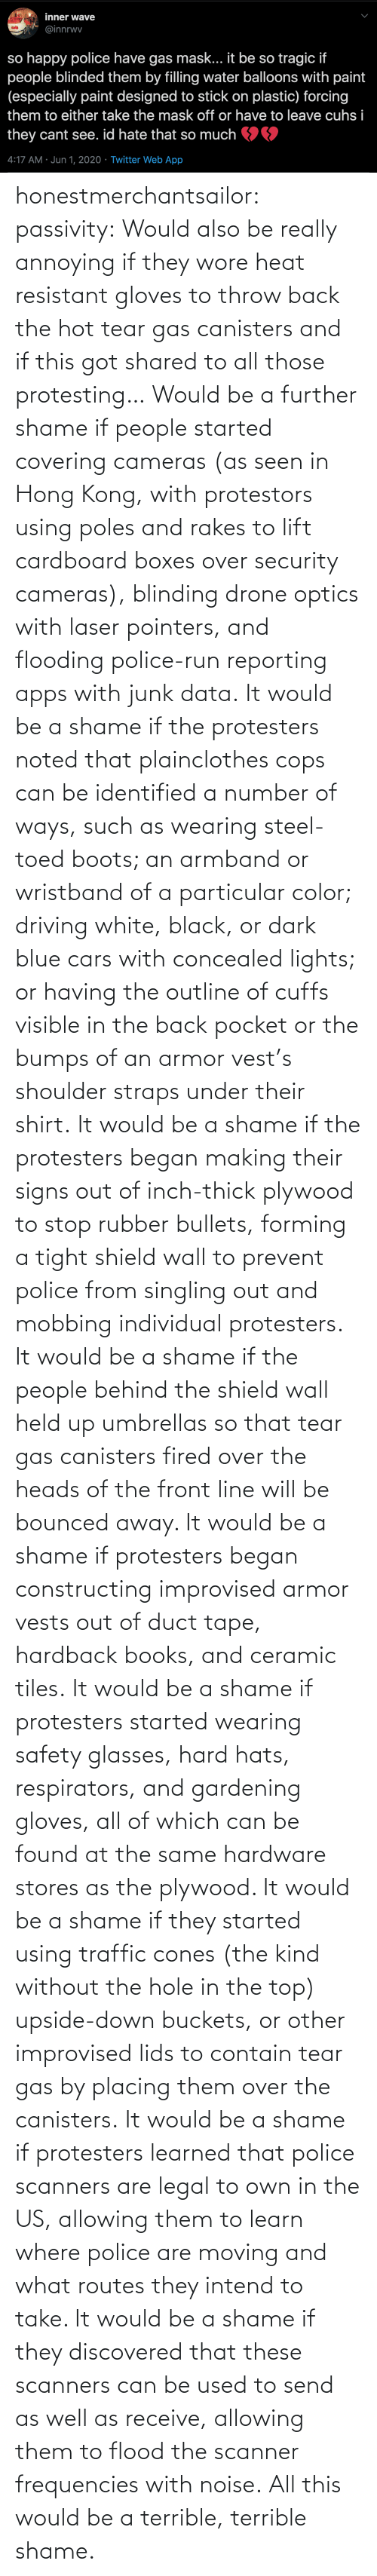 steel: honestmerchantsailor: passivity: Would also be really annoying if they wore heat resistant gloves to throw back the hot tear gas canisters and if this got shared to all those protesting… Would be a further shame if people started covering cameras (as seen in Hong Kong, with protestors using poles and rakes to lift cardboard boxes over security cameras), blinding drone optics with laser pointers, and flooding police-run reporting apps with junk data. It would be a shame if the protesters noted that plainclothes cops can be identified a number of ways, such as wearing steel-toed boots; an armband or wristband of a particular color; driving white, black, or dark blue cars with concealed lights; or having the outline of cuffs visible in the back pocket or the bumps of an armor vest's shoulder straps under their shirt. It would be a shame if the protesters began making their signs out of inch-thick plywood to stop rubber bullets, forming a tight shield wall to prevent police from singling out and mobbing individual protesters. It would be a shame if the people behind the shield wall held up umbrellas so that tear gas canisters fired over the heads of the front line will be bounced away. It would be a shame if protesters began constructing improvised armor vests out of duct tape, hardback books, and ceramic tiles. It would be a shame if protesters started wearing safety glasses, hard hats, respirators, and gardening gloves, all of which can be found at the same hardware stores as the plywood. It would be a shame if they started using traffic cones (the kind without the hole in the top) upside-down buckets, or other improvised lids to contain tear gas by placing them over the canisters. It would be a shame if protesters learned that police scanners are legal to own in the US, allowing them to learn where police are moving and what routes they intend to take. It would be a shame if they discovered that these scanners can be used to send as well as receive, allowing them to flood the scanner frequencies with noise. All this would be a terrible, terrible shame.